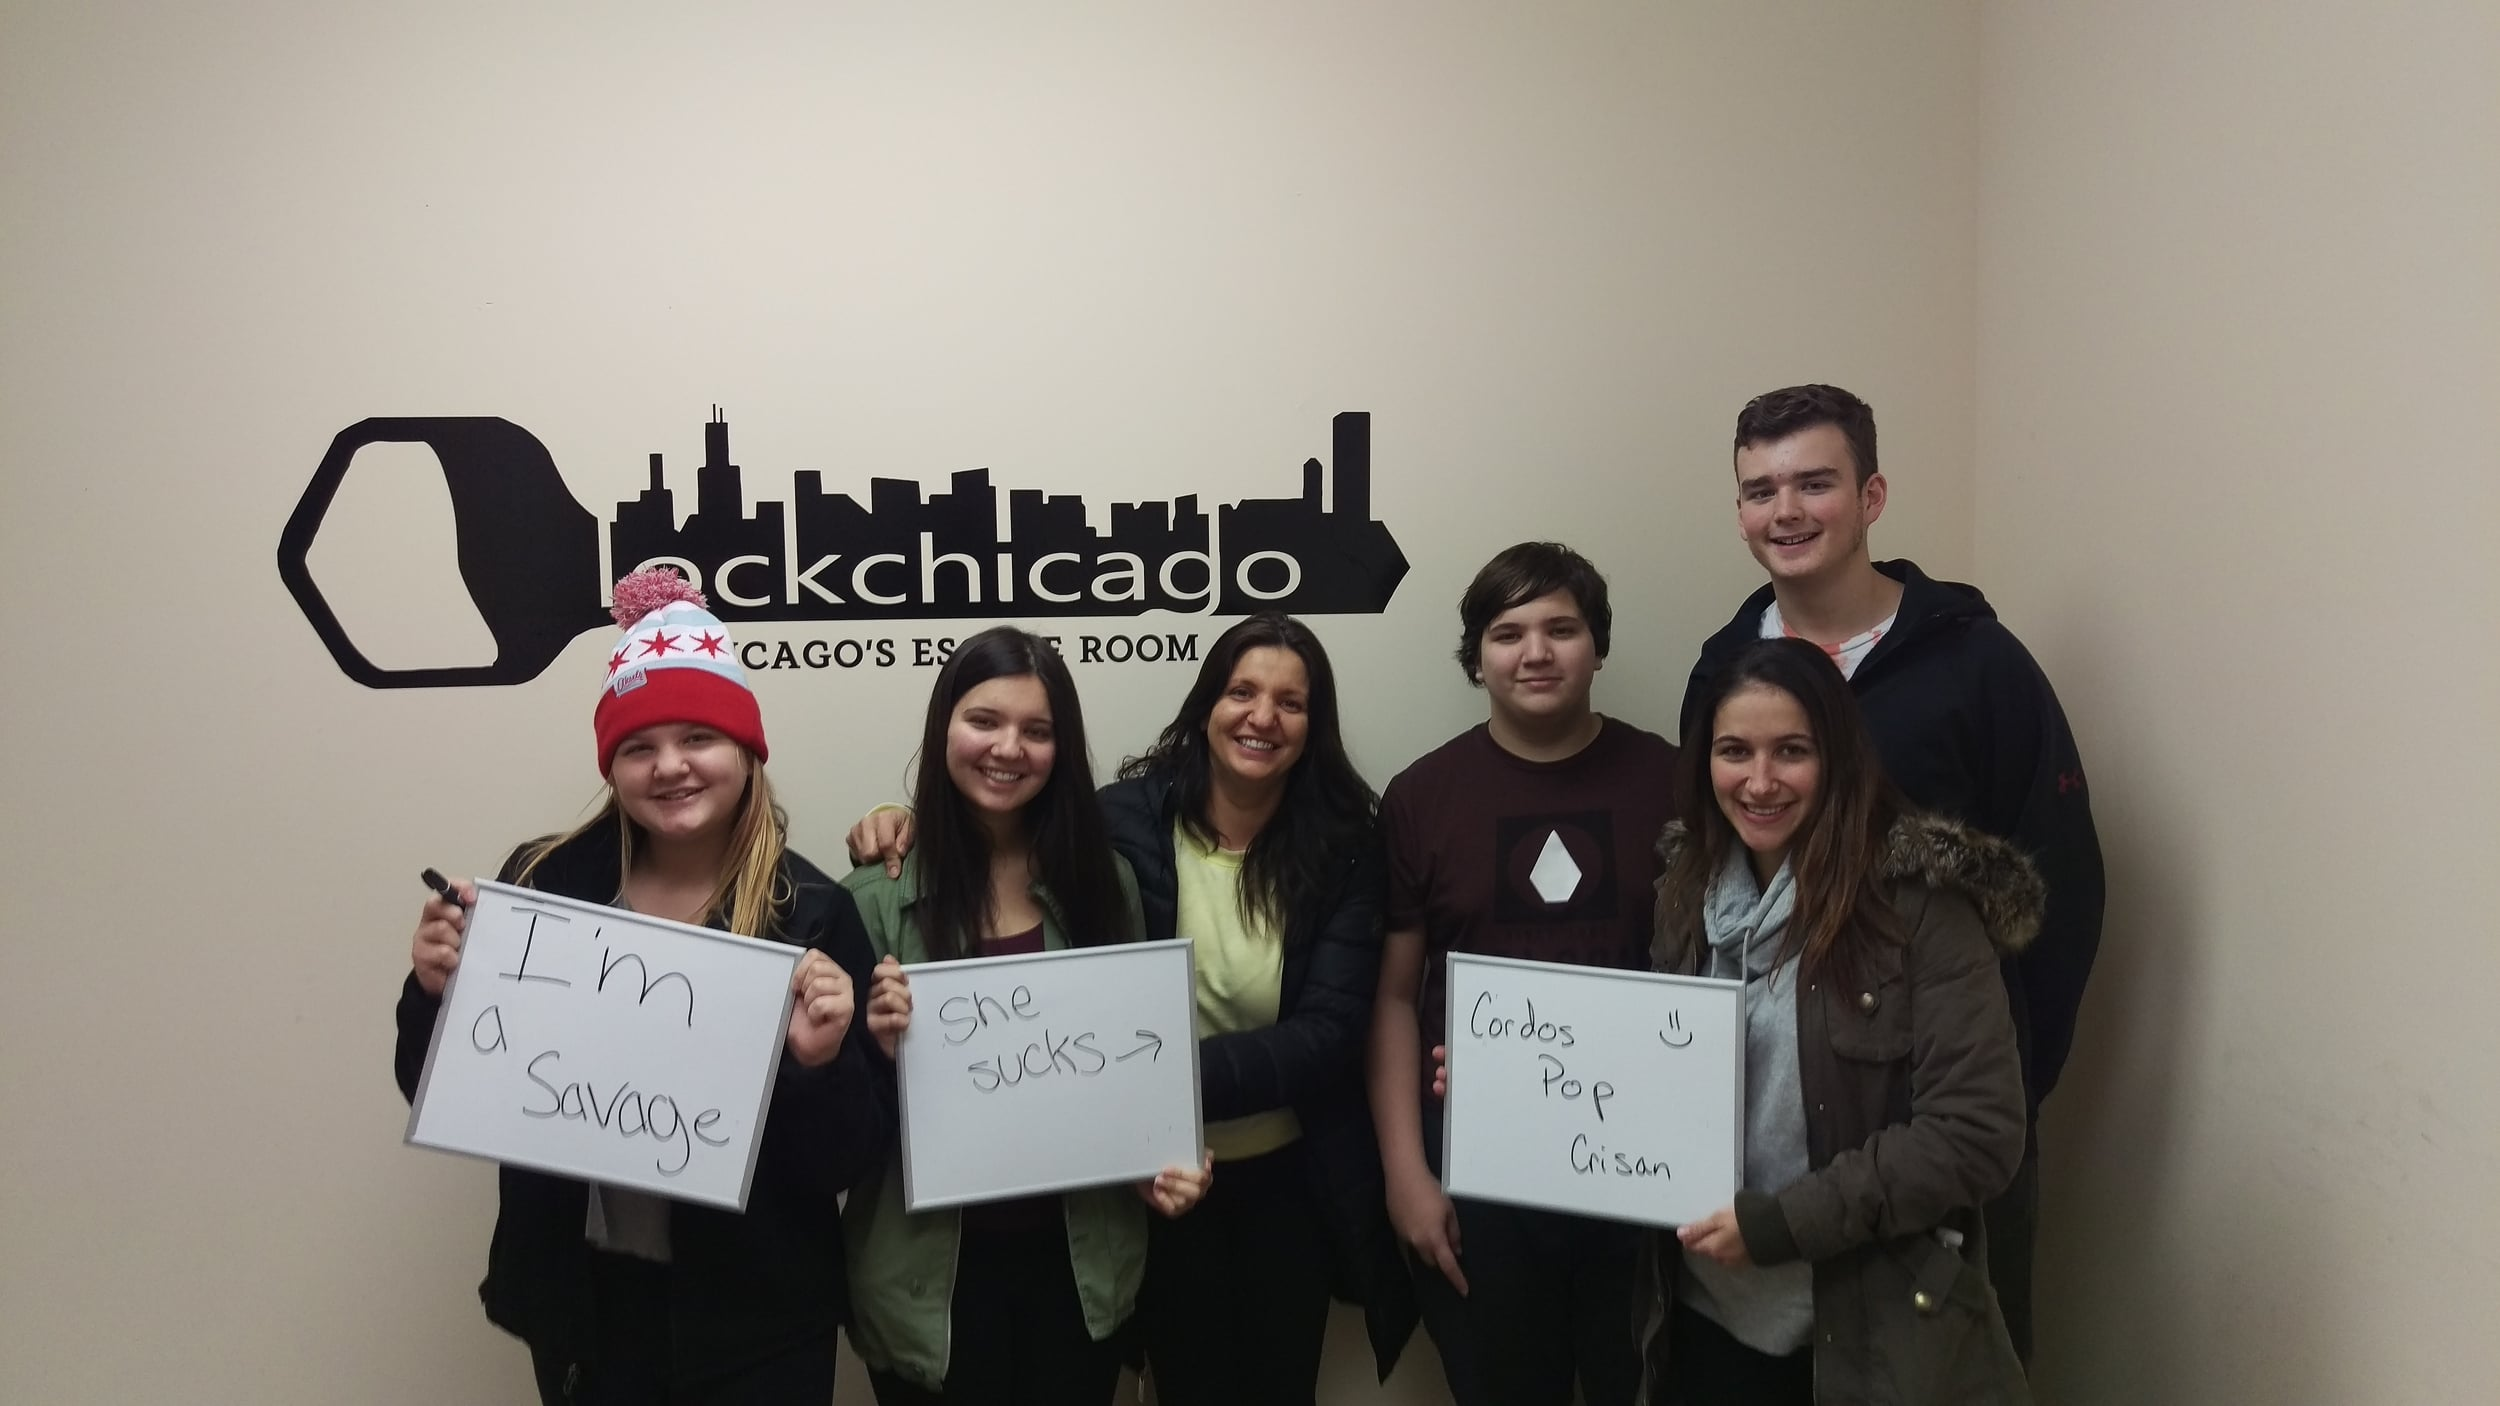 Thanks for weathering the cold to come try out the Sunburn escape room at Lock Chicago! We hope you all had a blast!